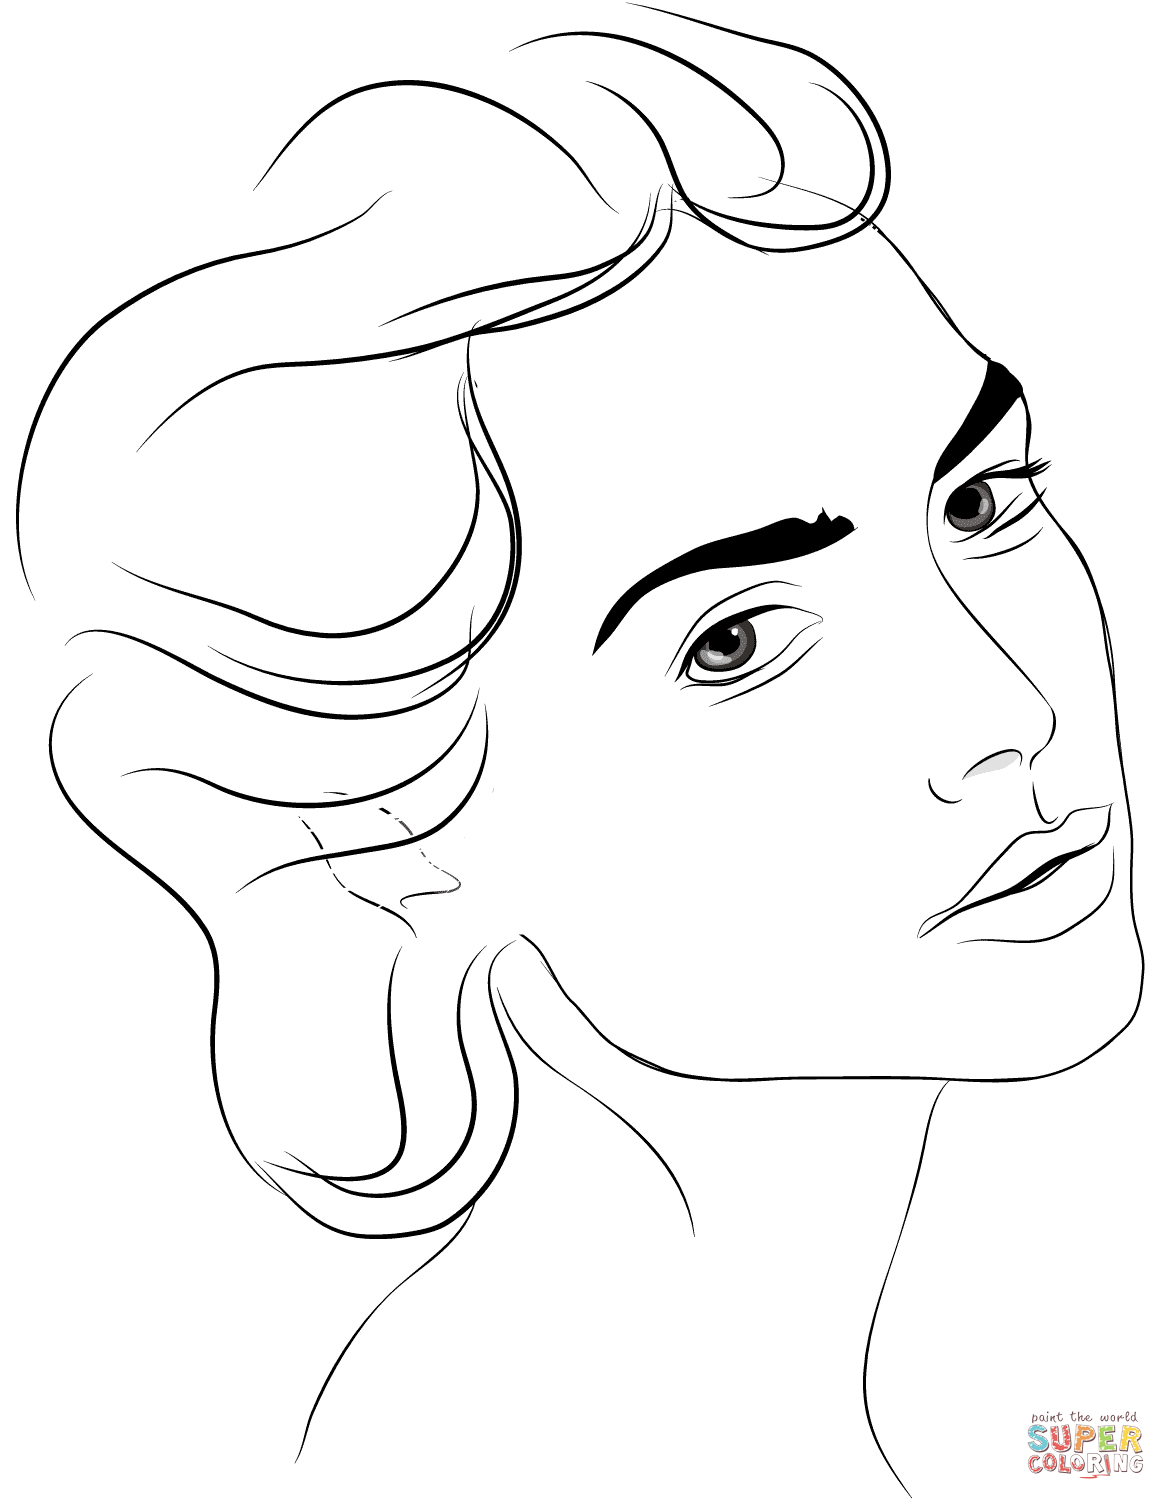 Woman S Face Coloring Page Free Printable Coloring Pages